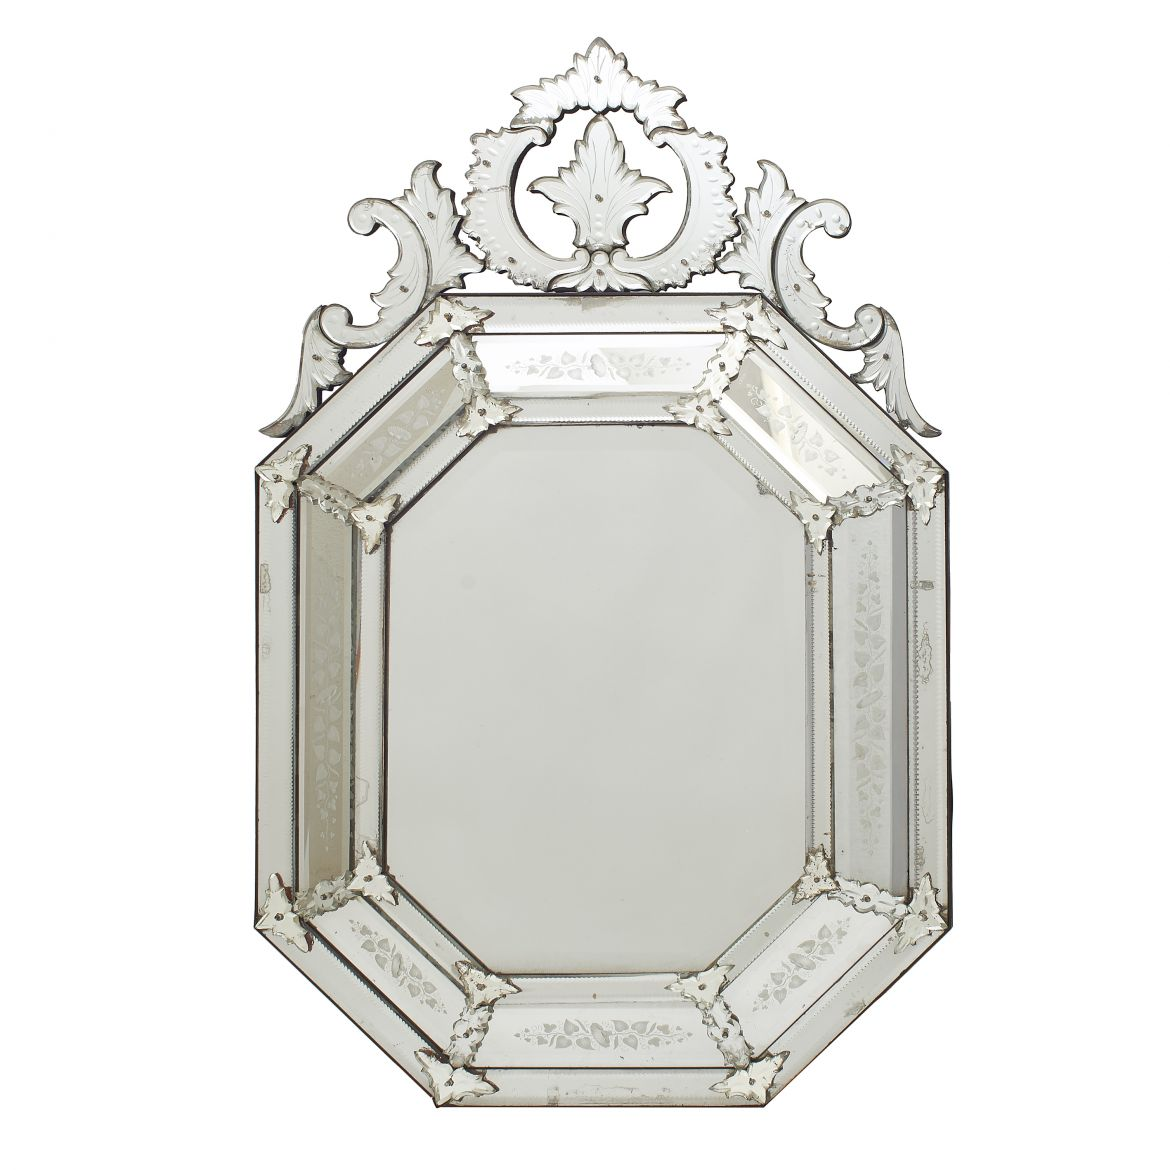 Octagonal Crested Cushion Mirror